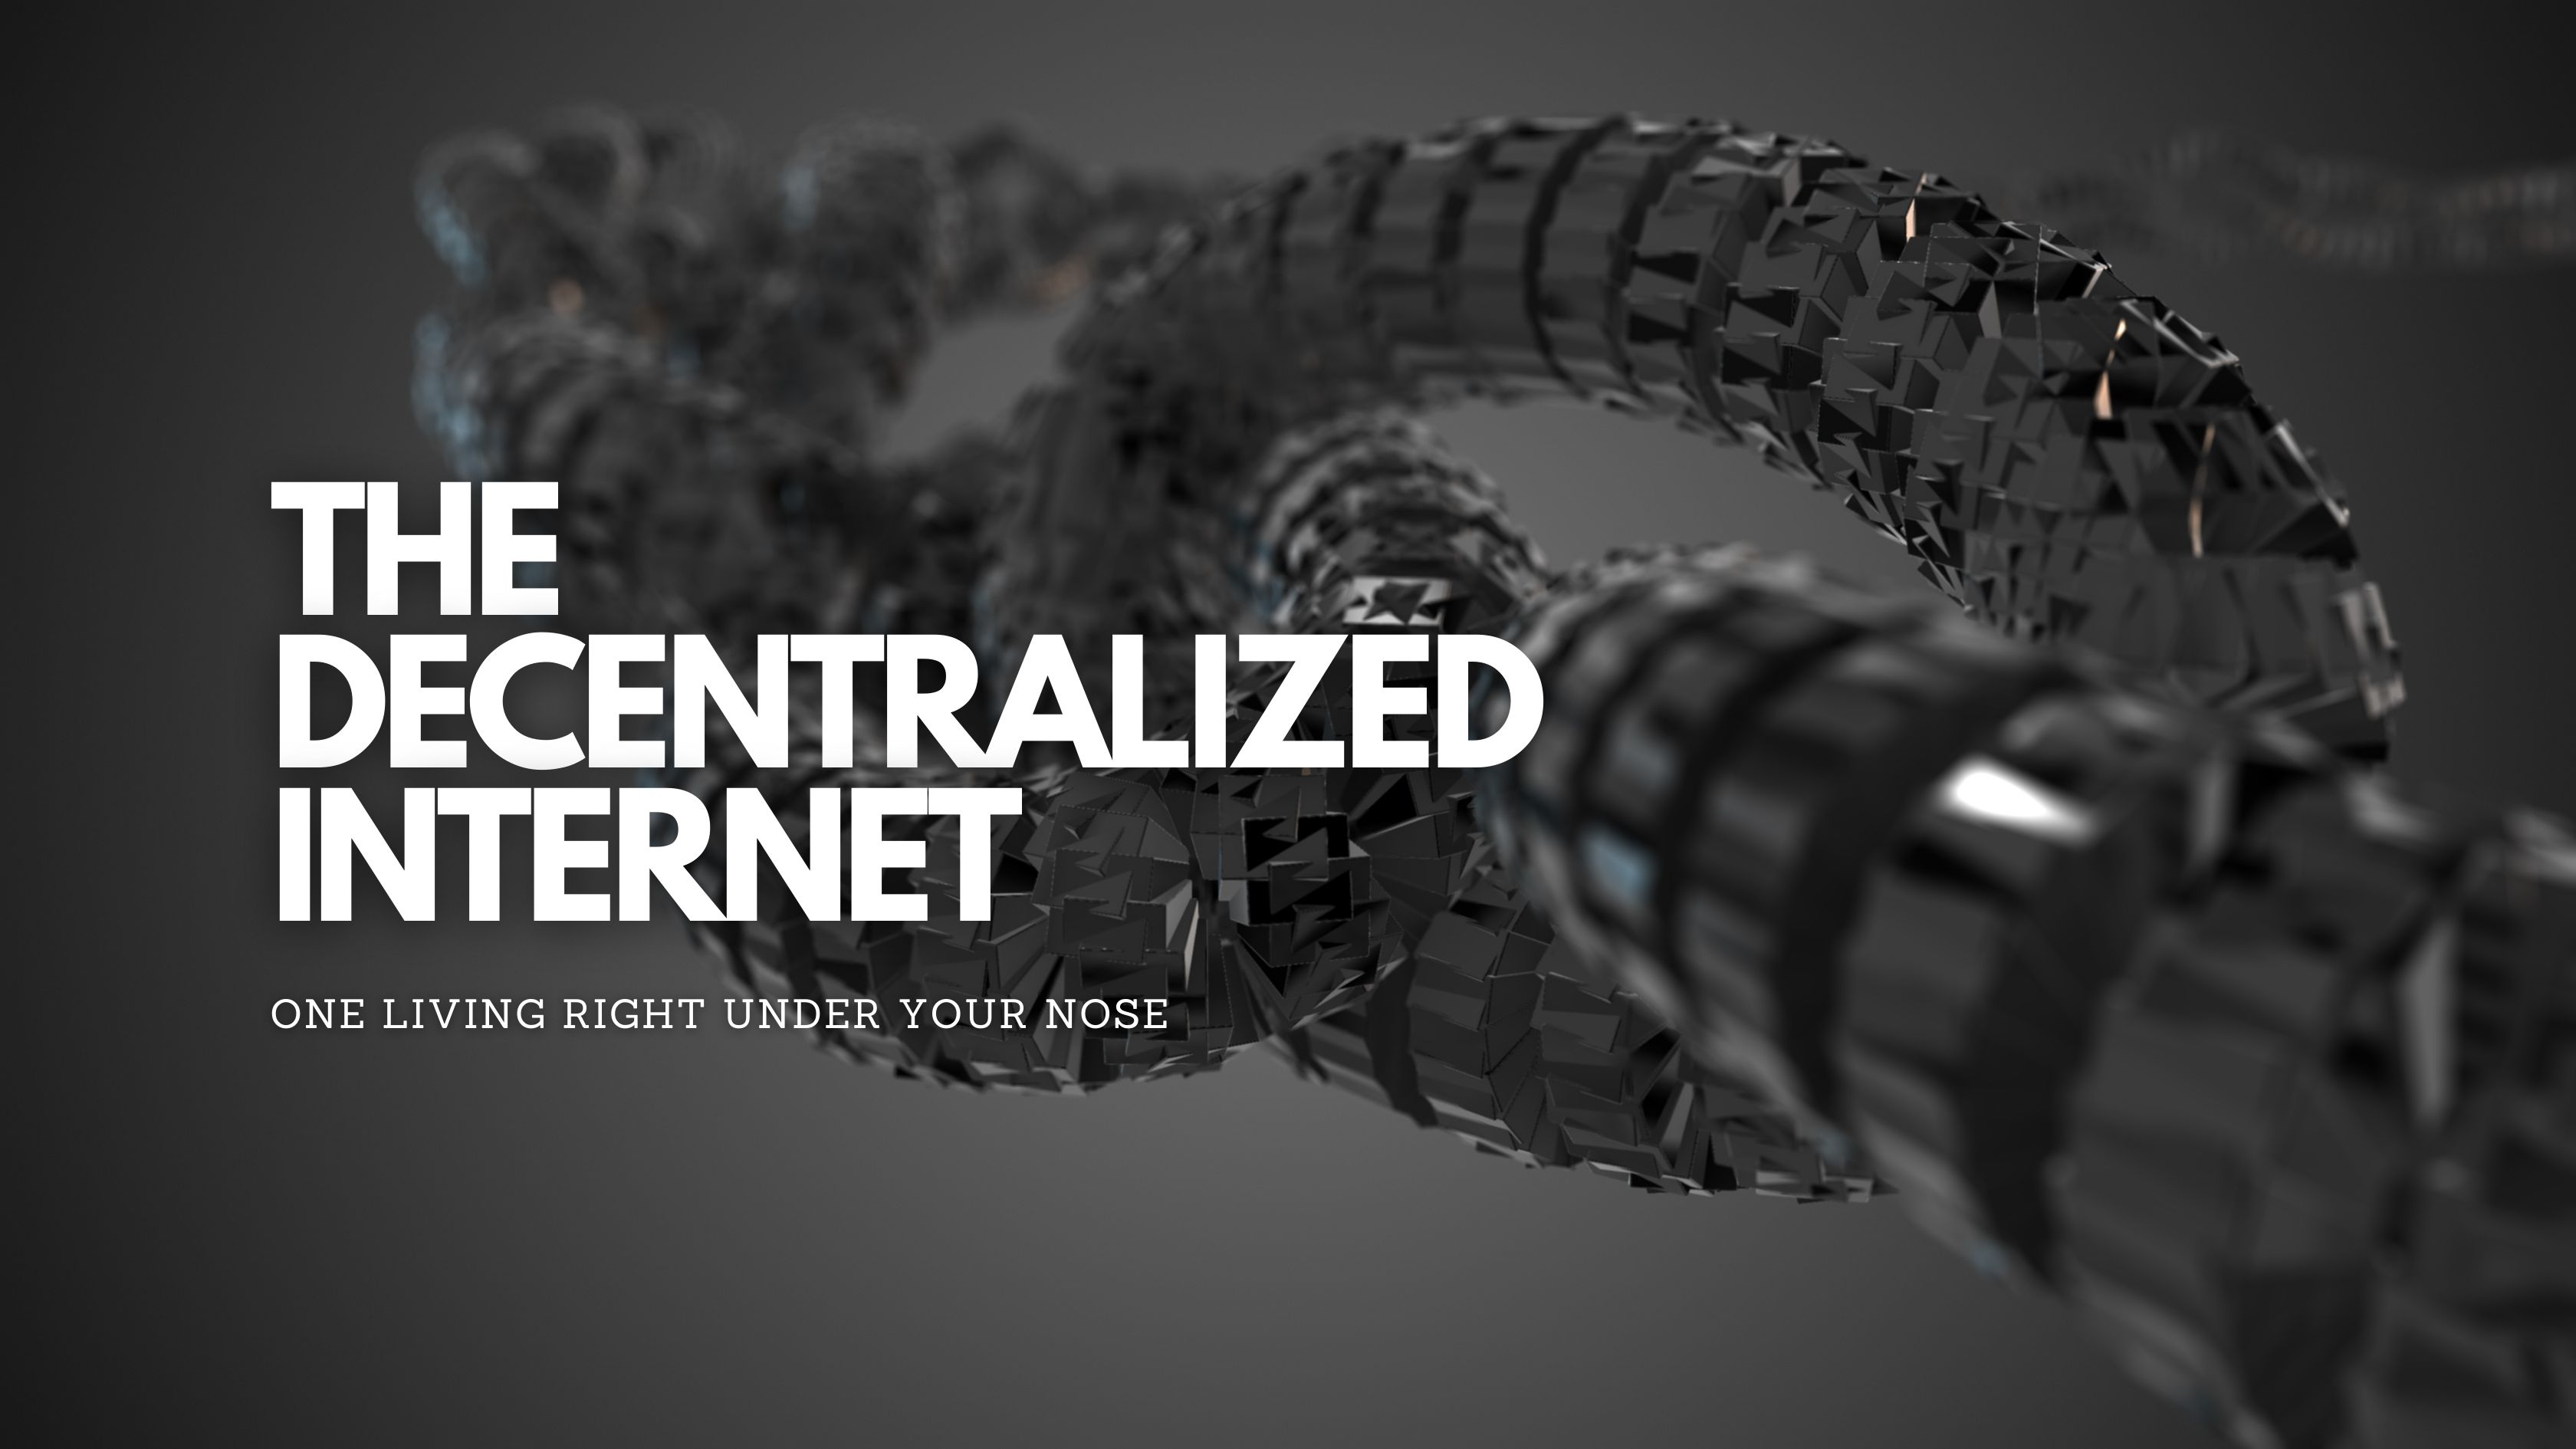 /successful-decentralization-lives-right-under-our-nose-lx23363k feature image